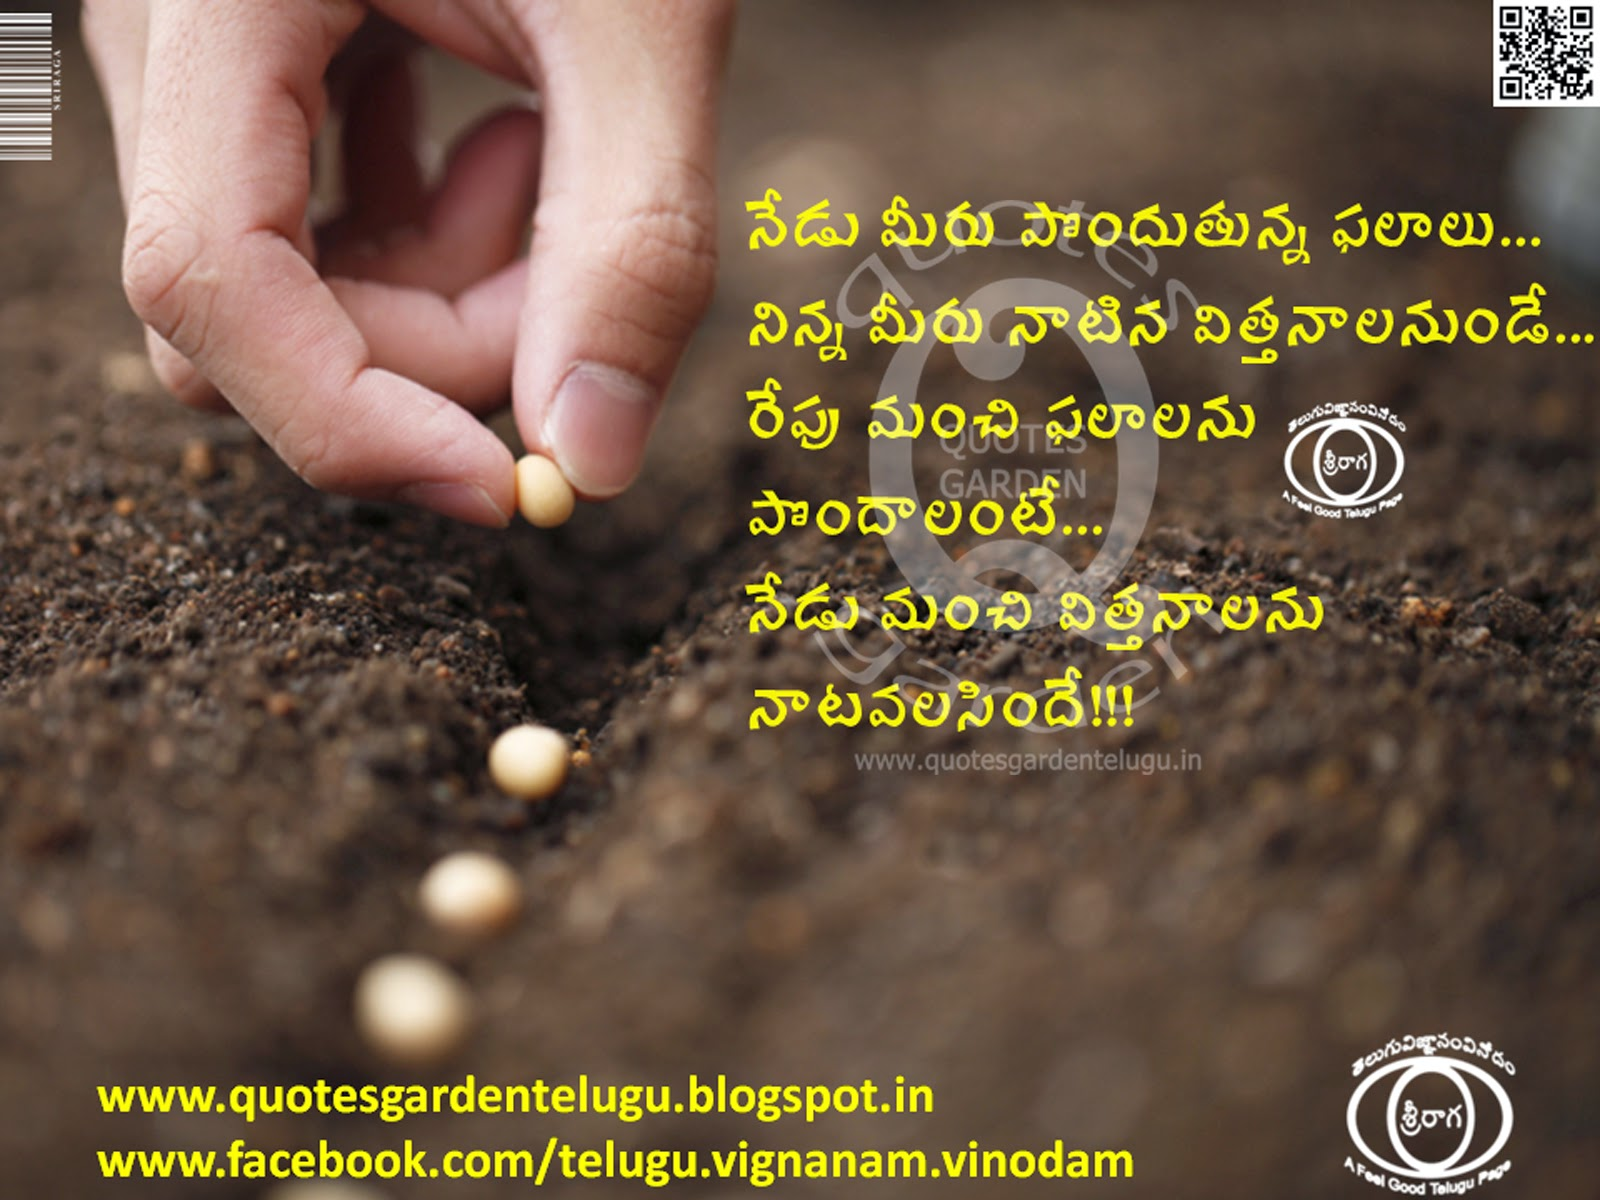 Images photoes Telugu inspirational life quotes quotesgardentelugu